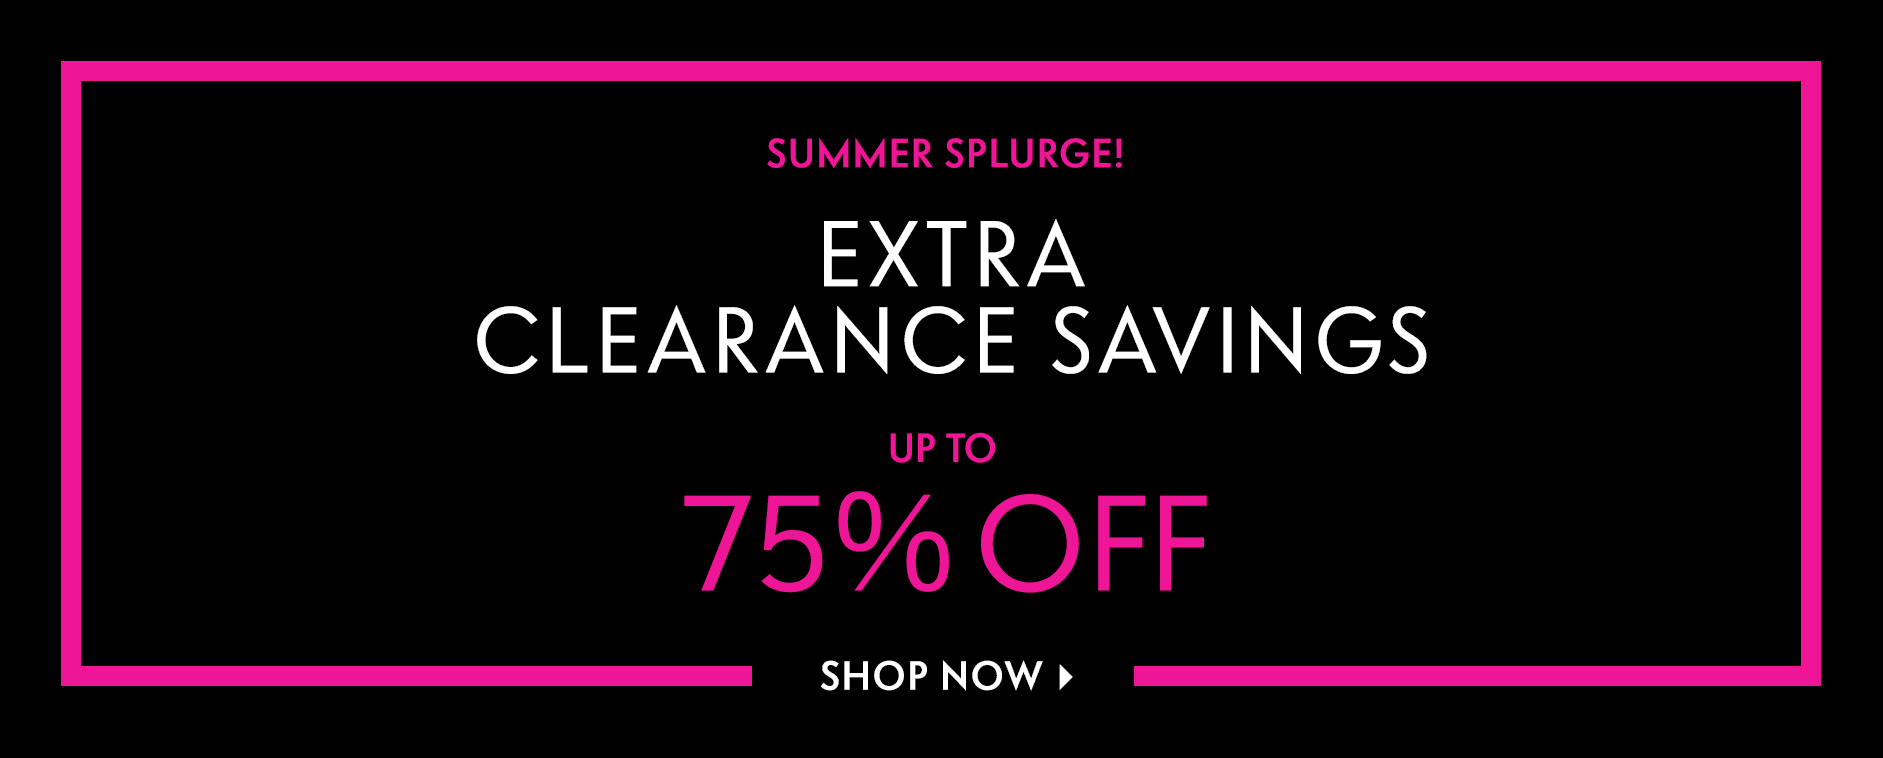 Summer Splurge! Extra Clearance Savings - Up to 75% off